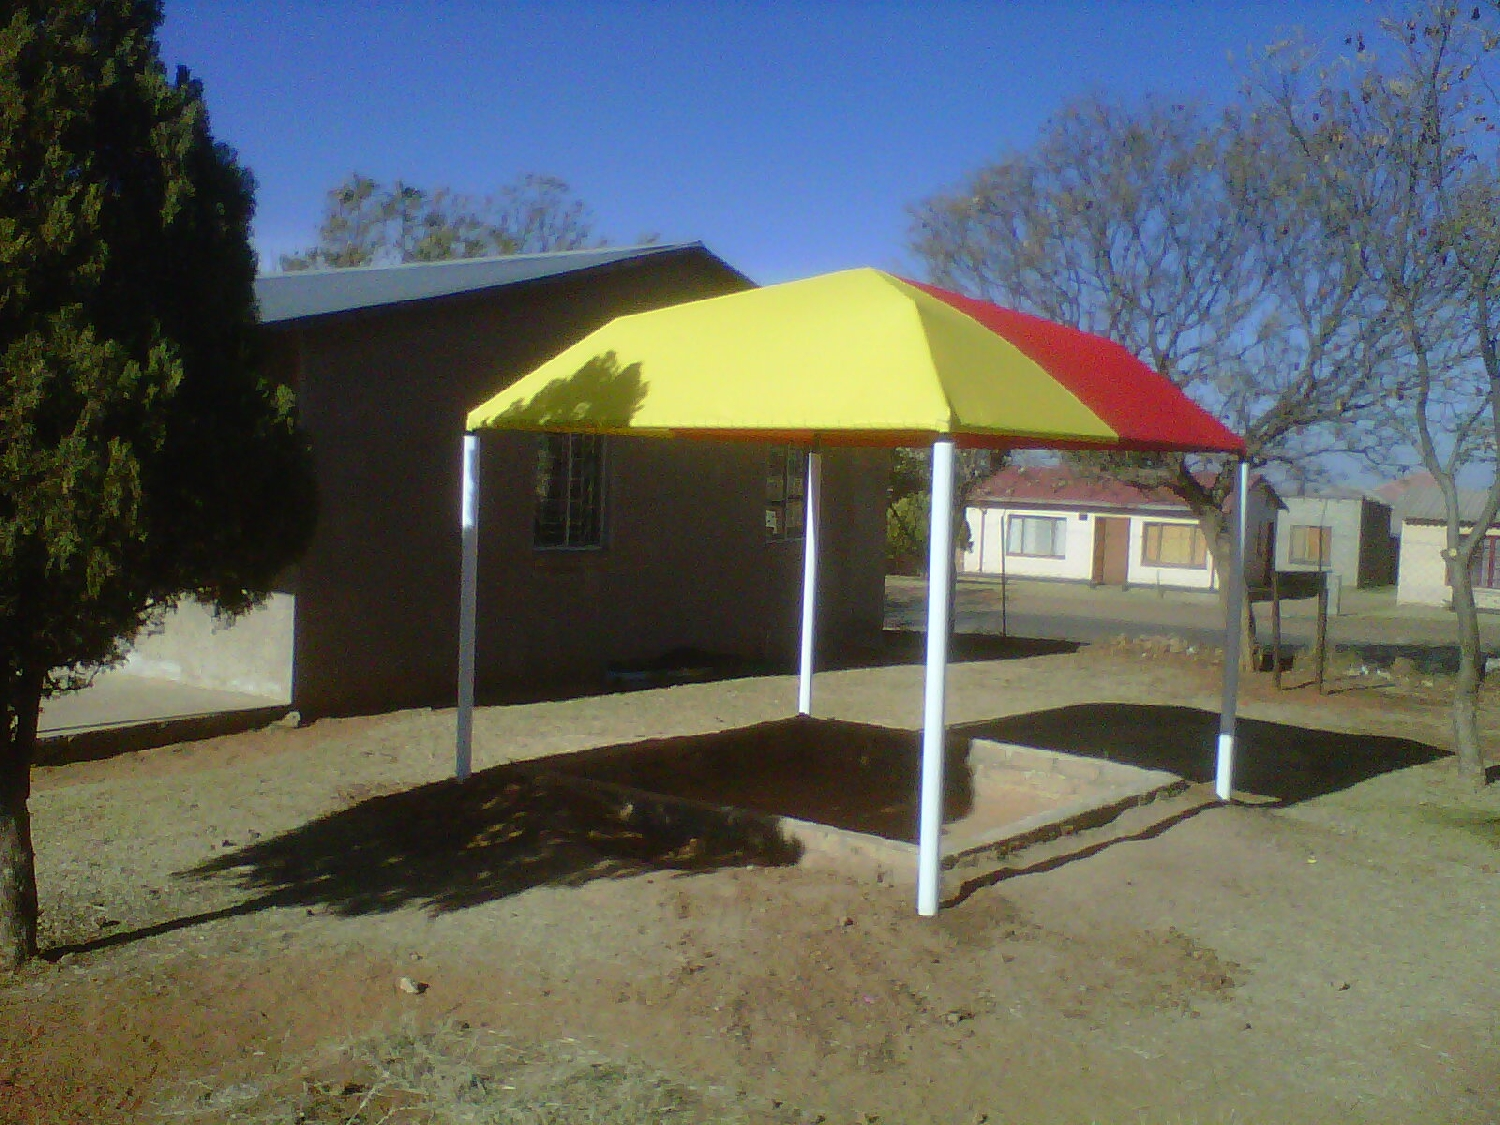 shade-of-3m-x-3m-with-sandpit-3m-x-3m-